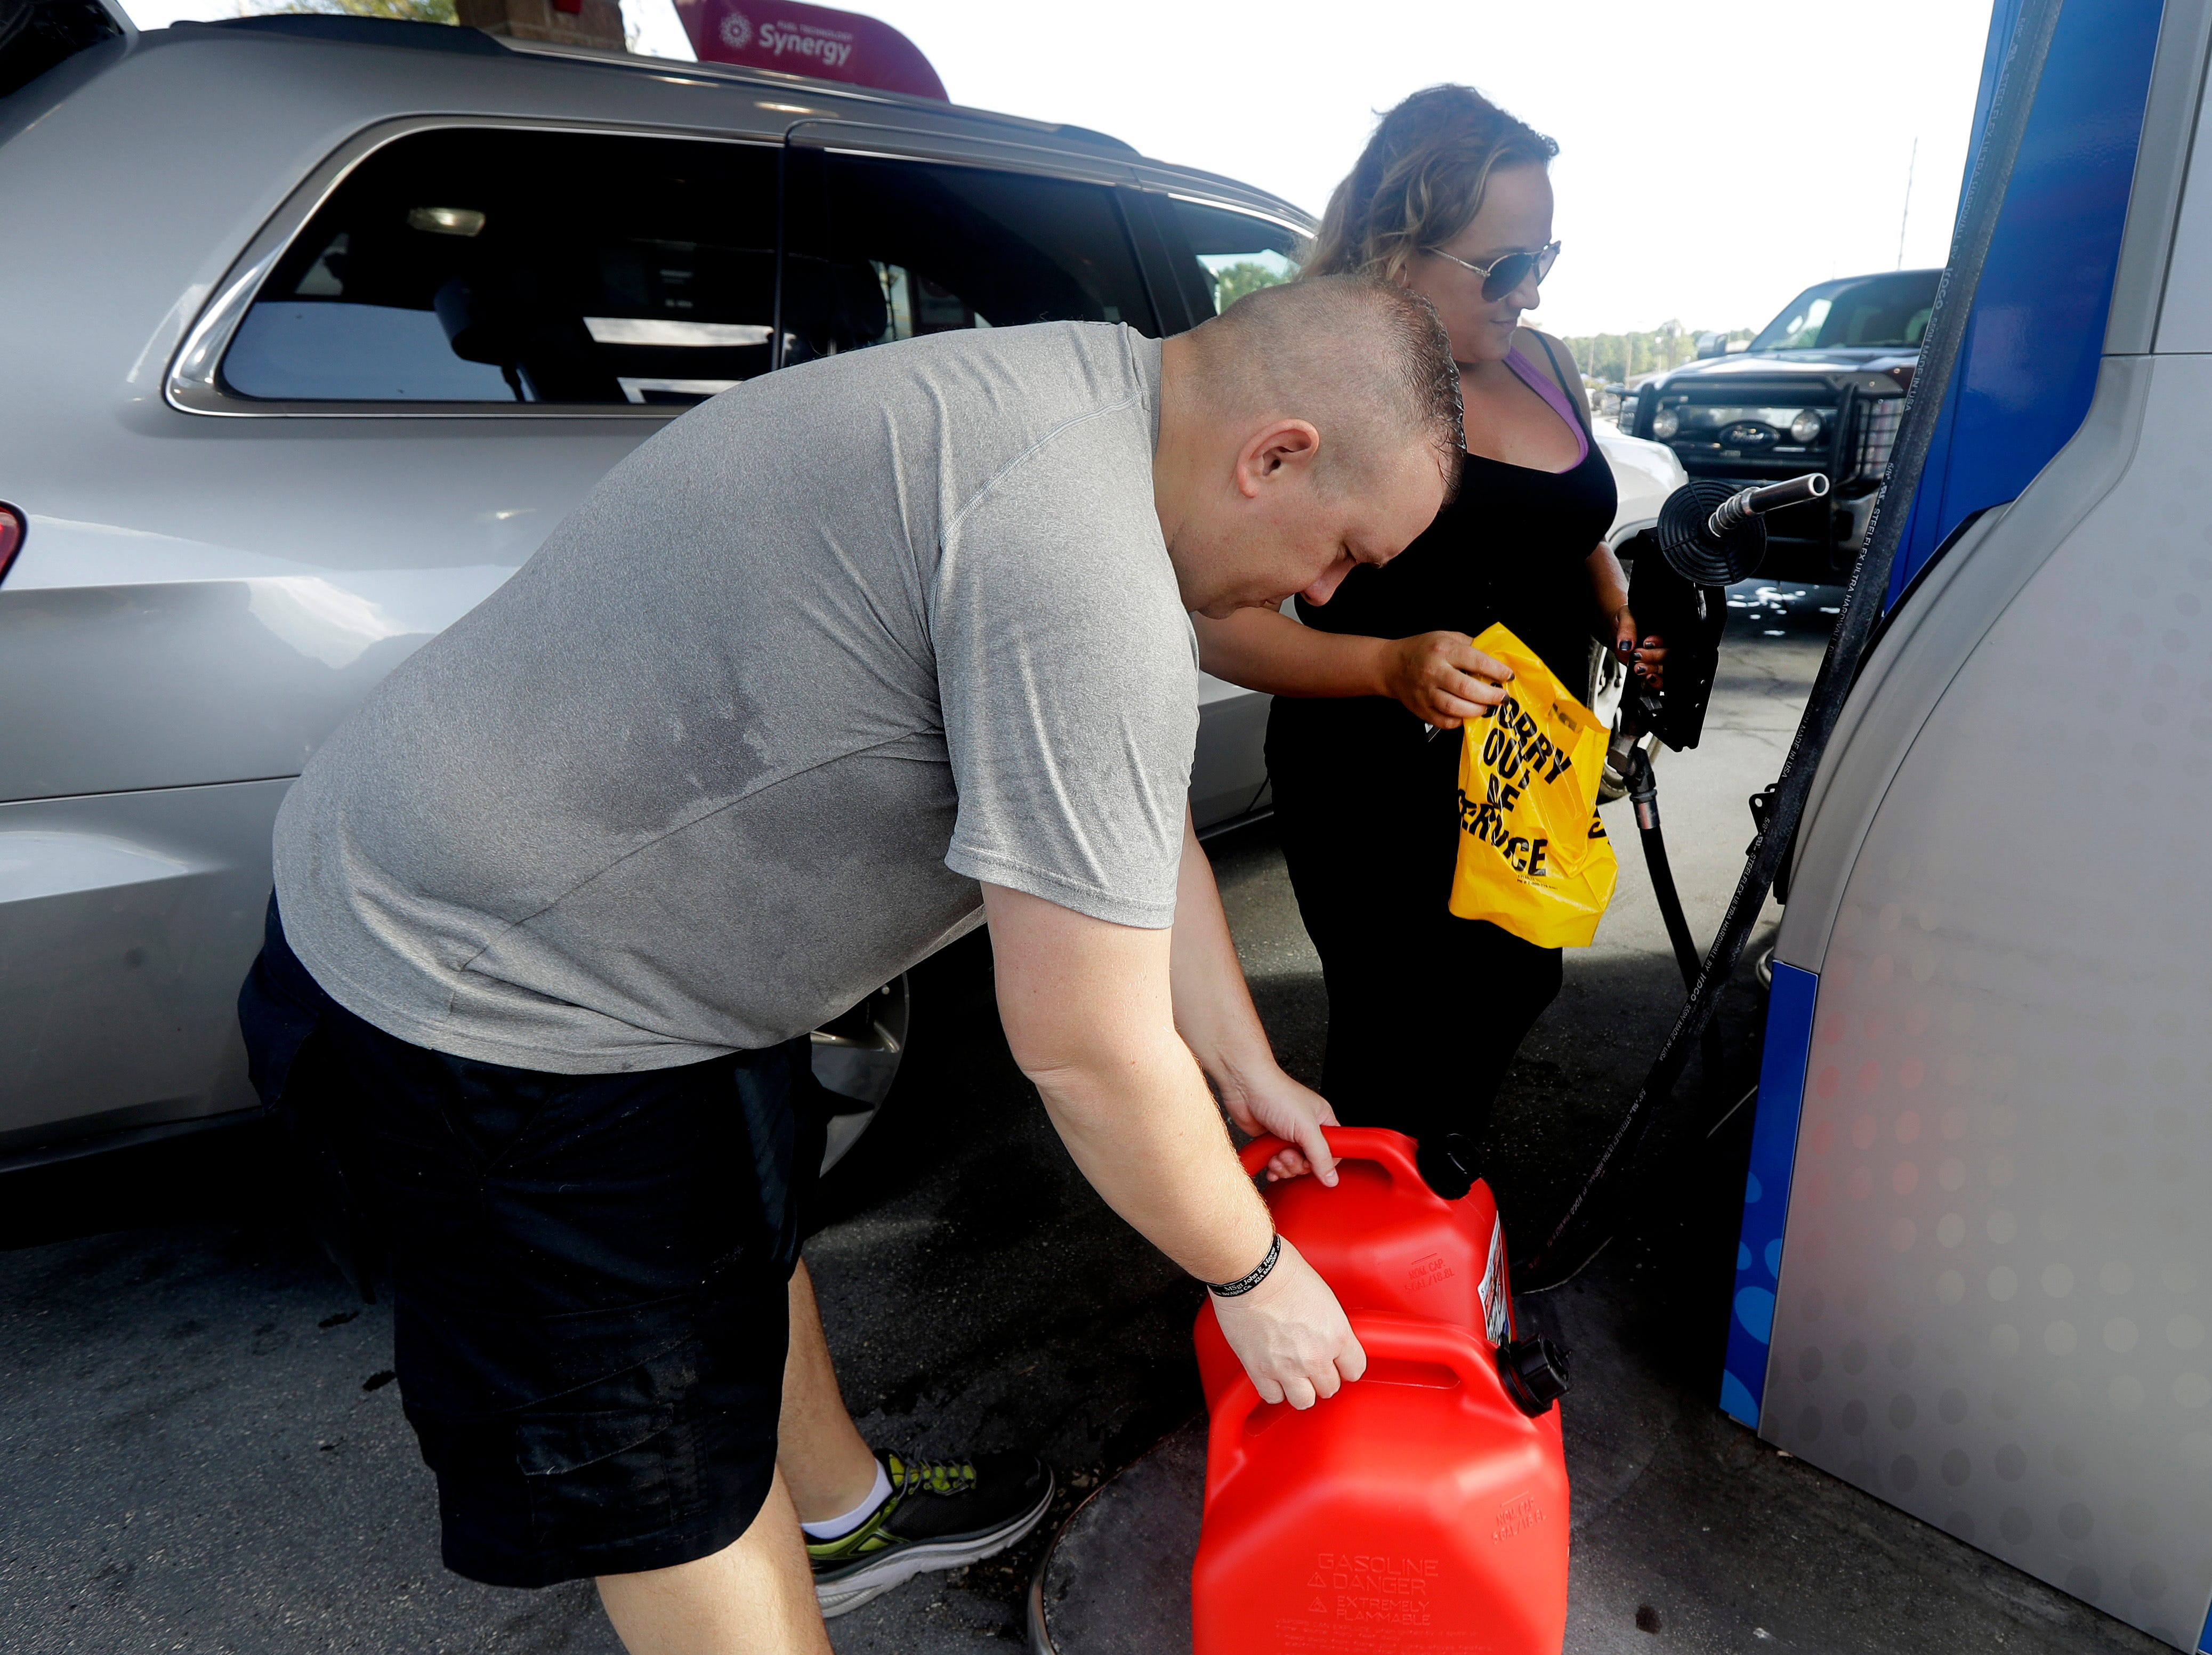 "Sarah Dankanich, right, removes an ""out of service"" wrapper from a gas pump as her husband, Bryan Dankanich, left, prepares to pump gas in cans in advance of Hurricane Florence in Wilmington, N.C., Wednesday, Sept. 12, 2018. Florence exploded into a potentially catastrophic hurricane Monday as it closed in on North and South Carolina, carrying winds up to 140 mph (220 kph) and water that could wreak havoc over a wide stretch of the eastern United States later this week."